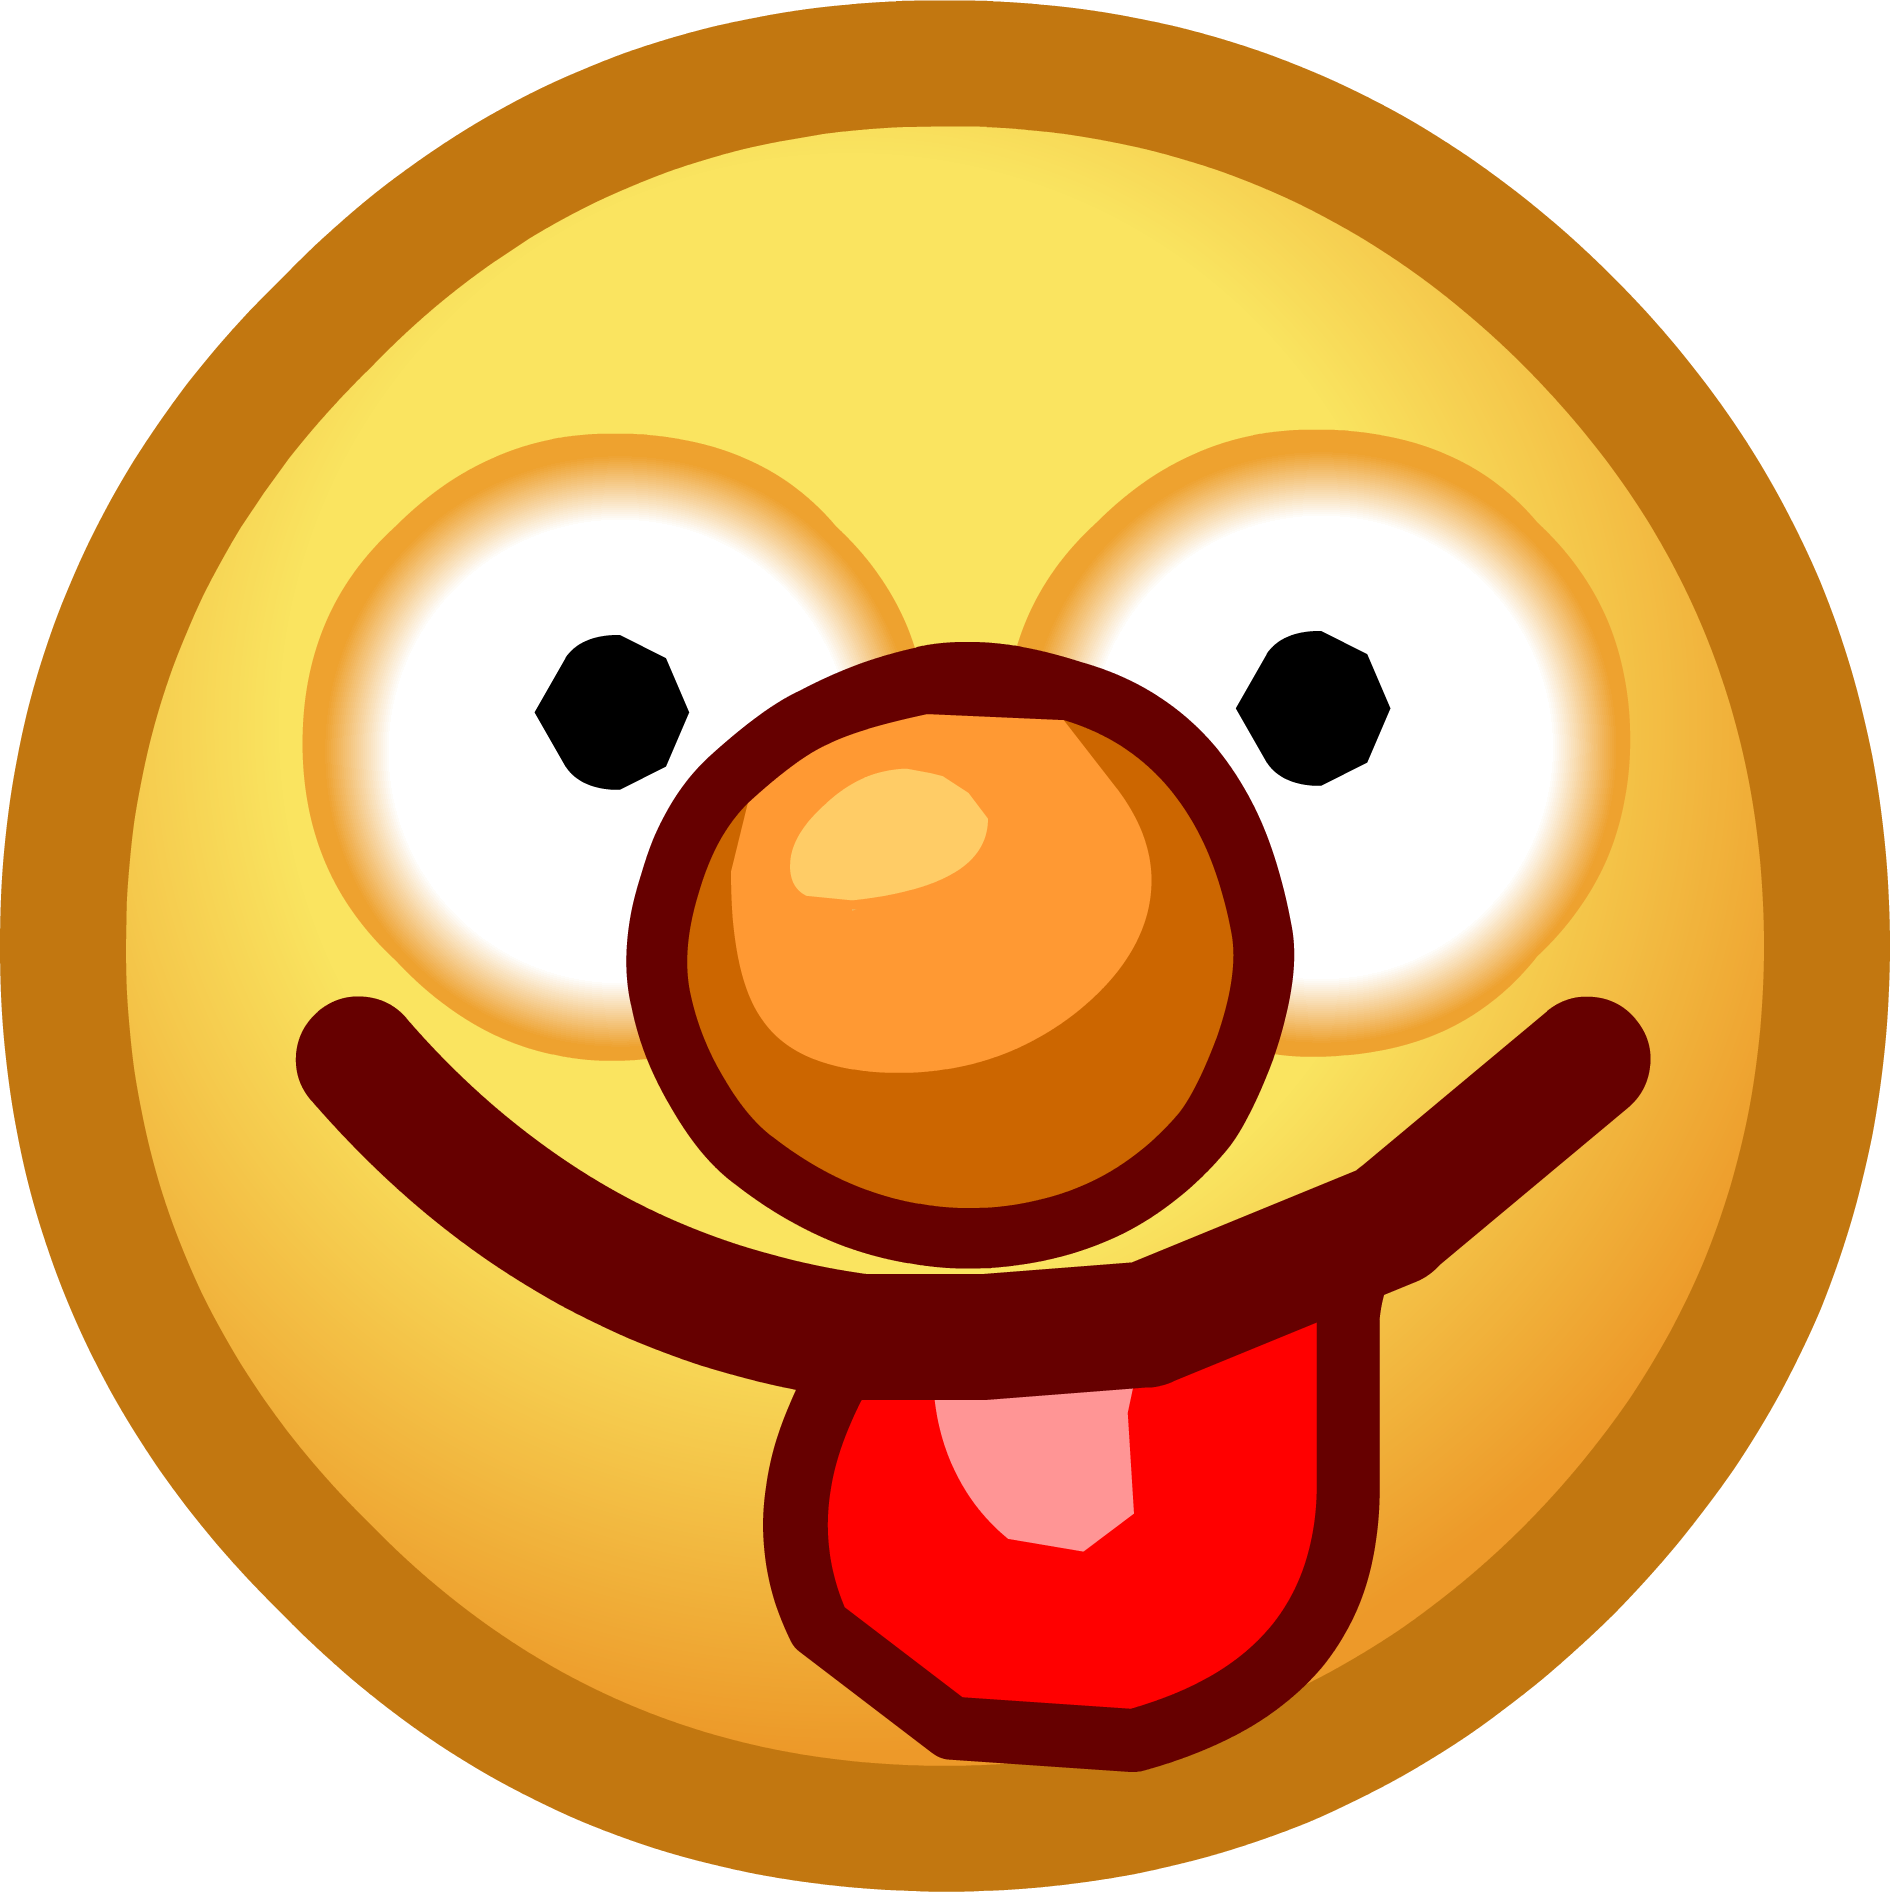 Tongue sticking out emoji png. Image muppets emoticons club